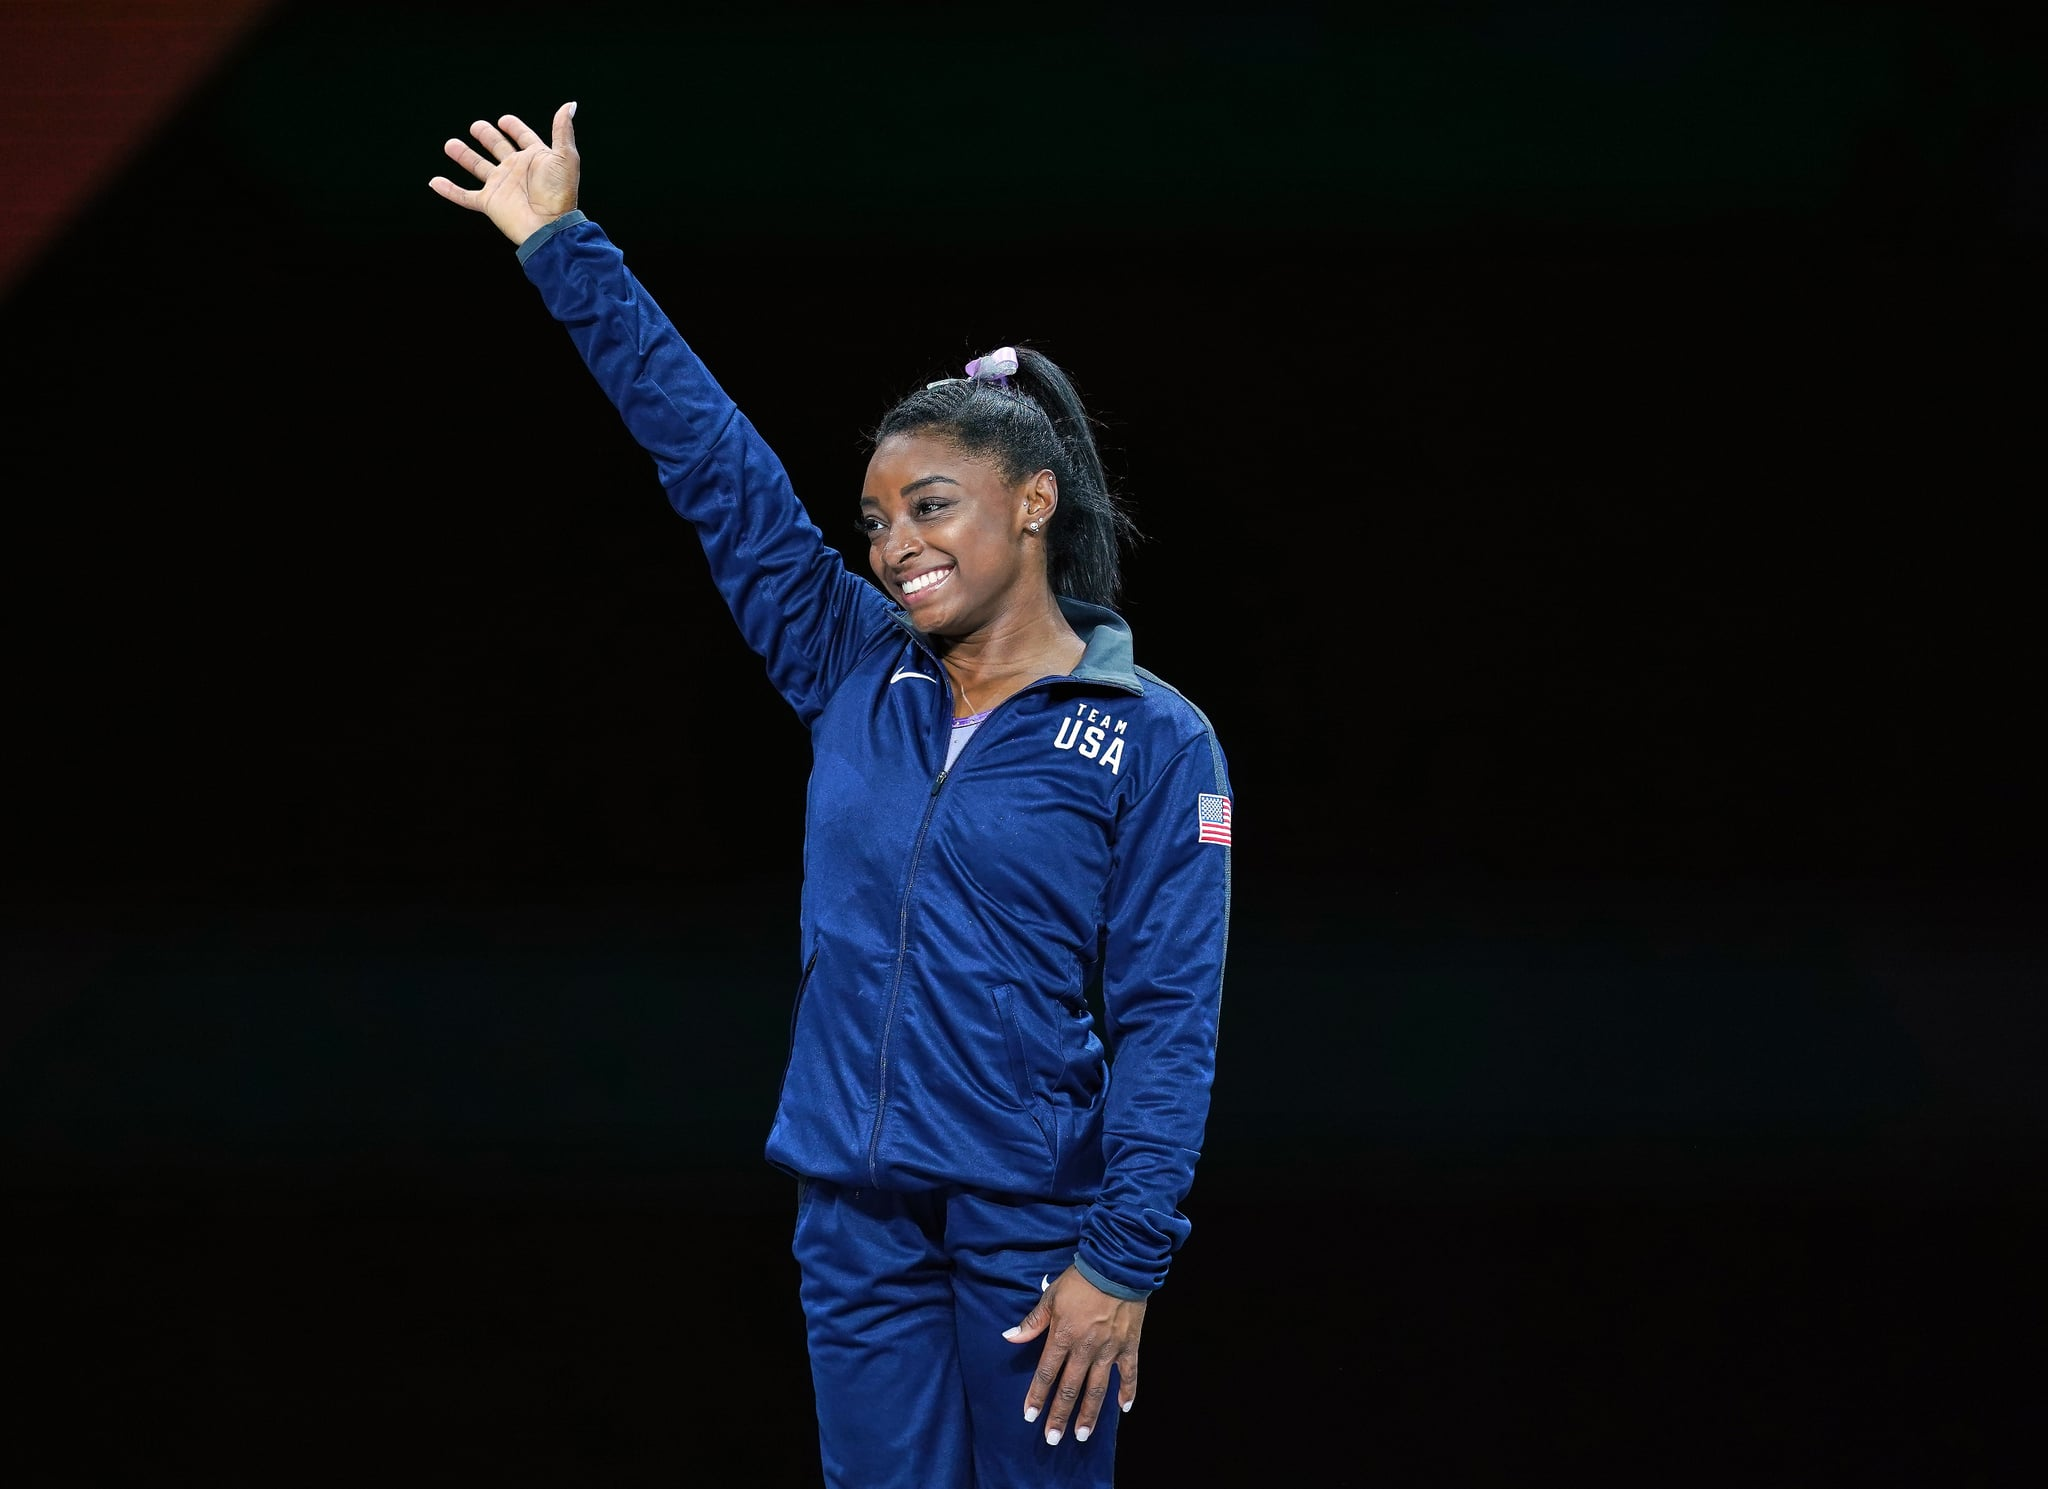 Simone Biles of United States of America while getting her gold medal in floor exercise for women at the 49th FIG Artistic Gymnastics World Championships in  Hanns Martin Schleyer Halle in Stuttgart, Germany on October 13, 2019. (Photo by Ulrik Pedersen/NurPhoto via Getty Images)